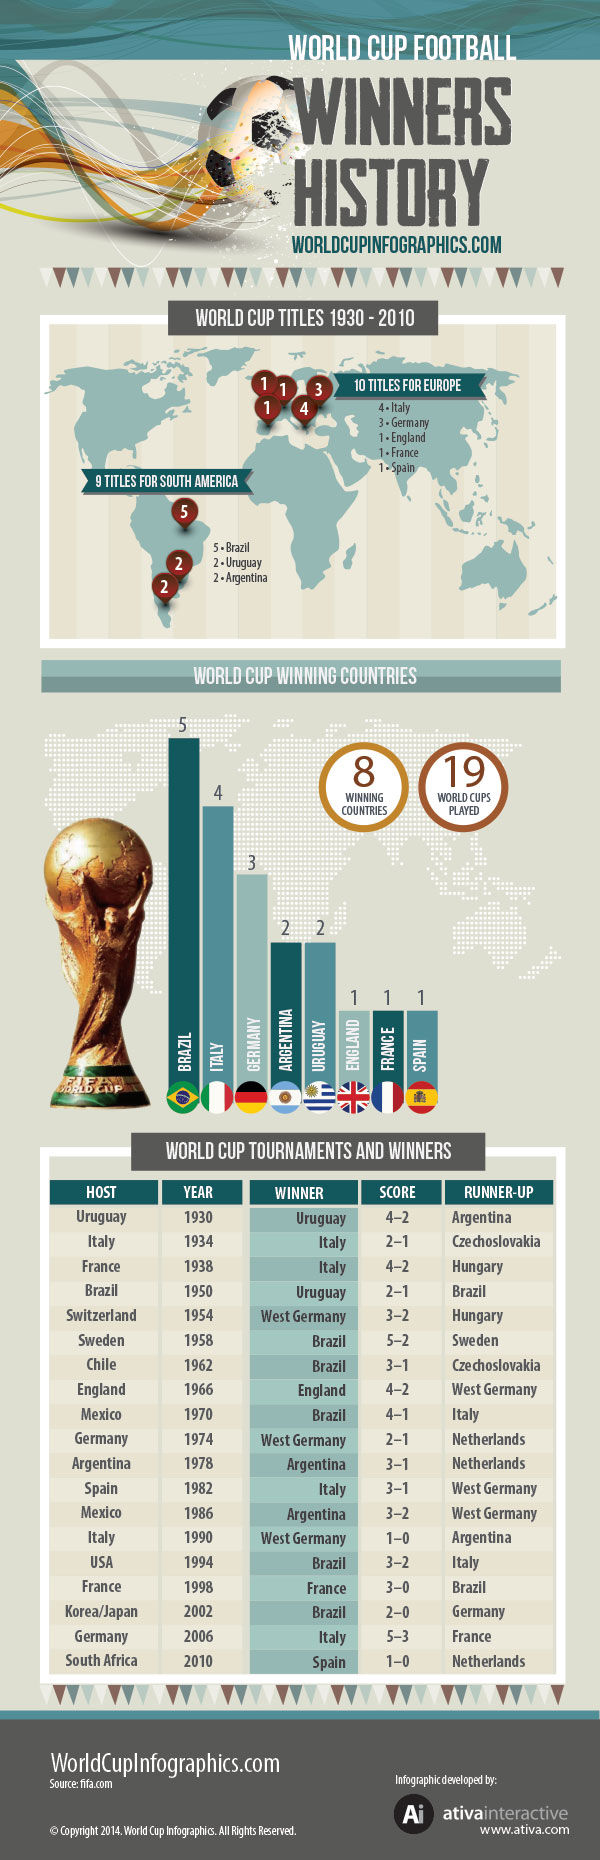 World Cup Winning History Infographic